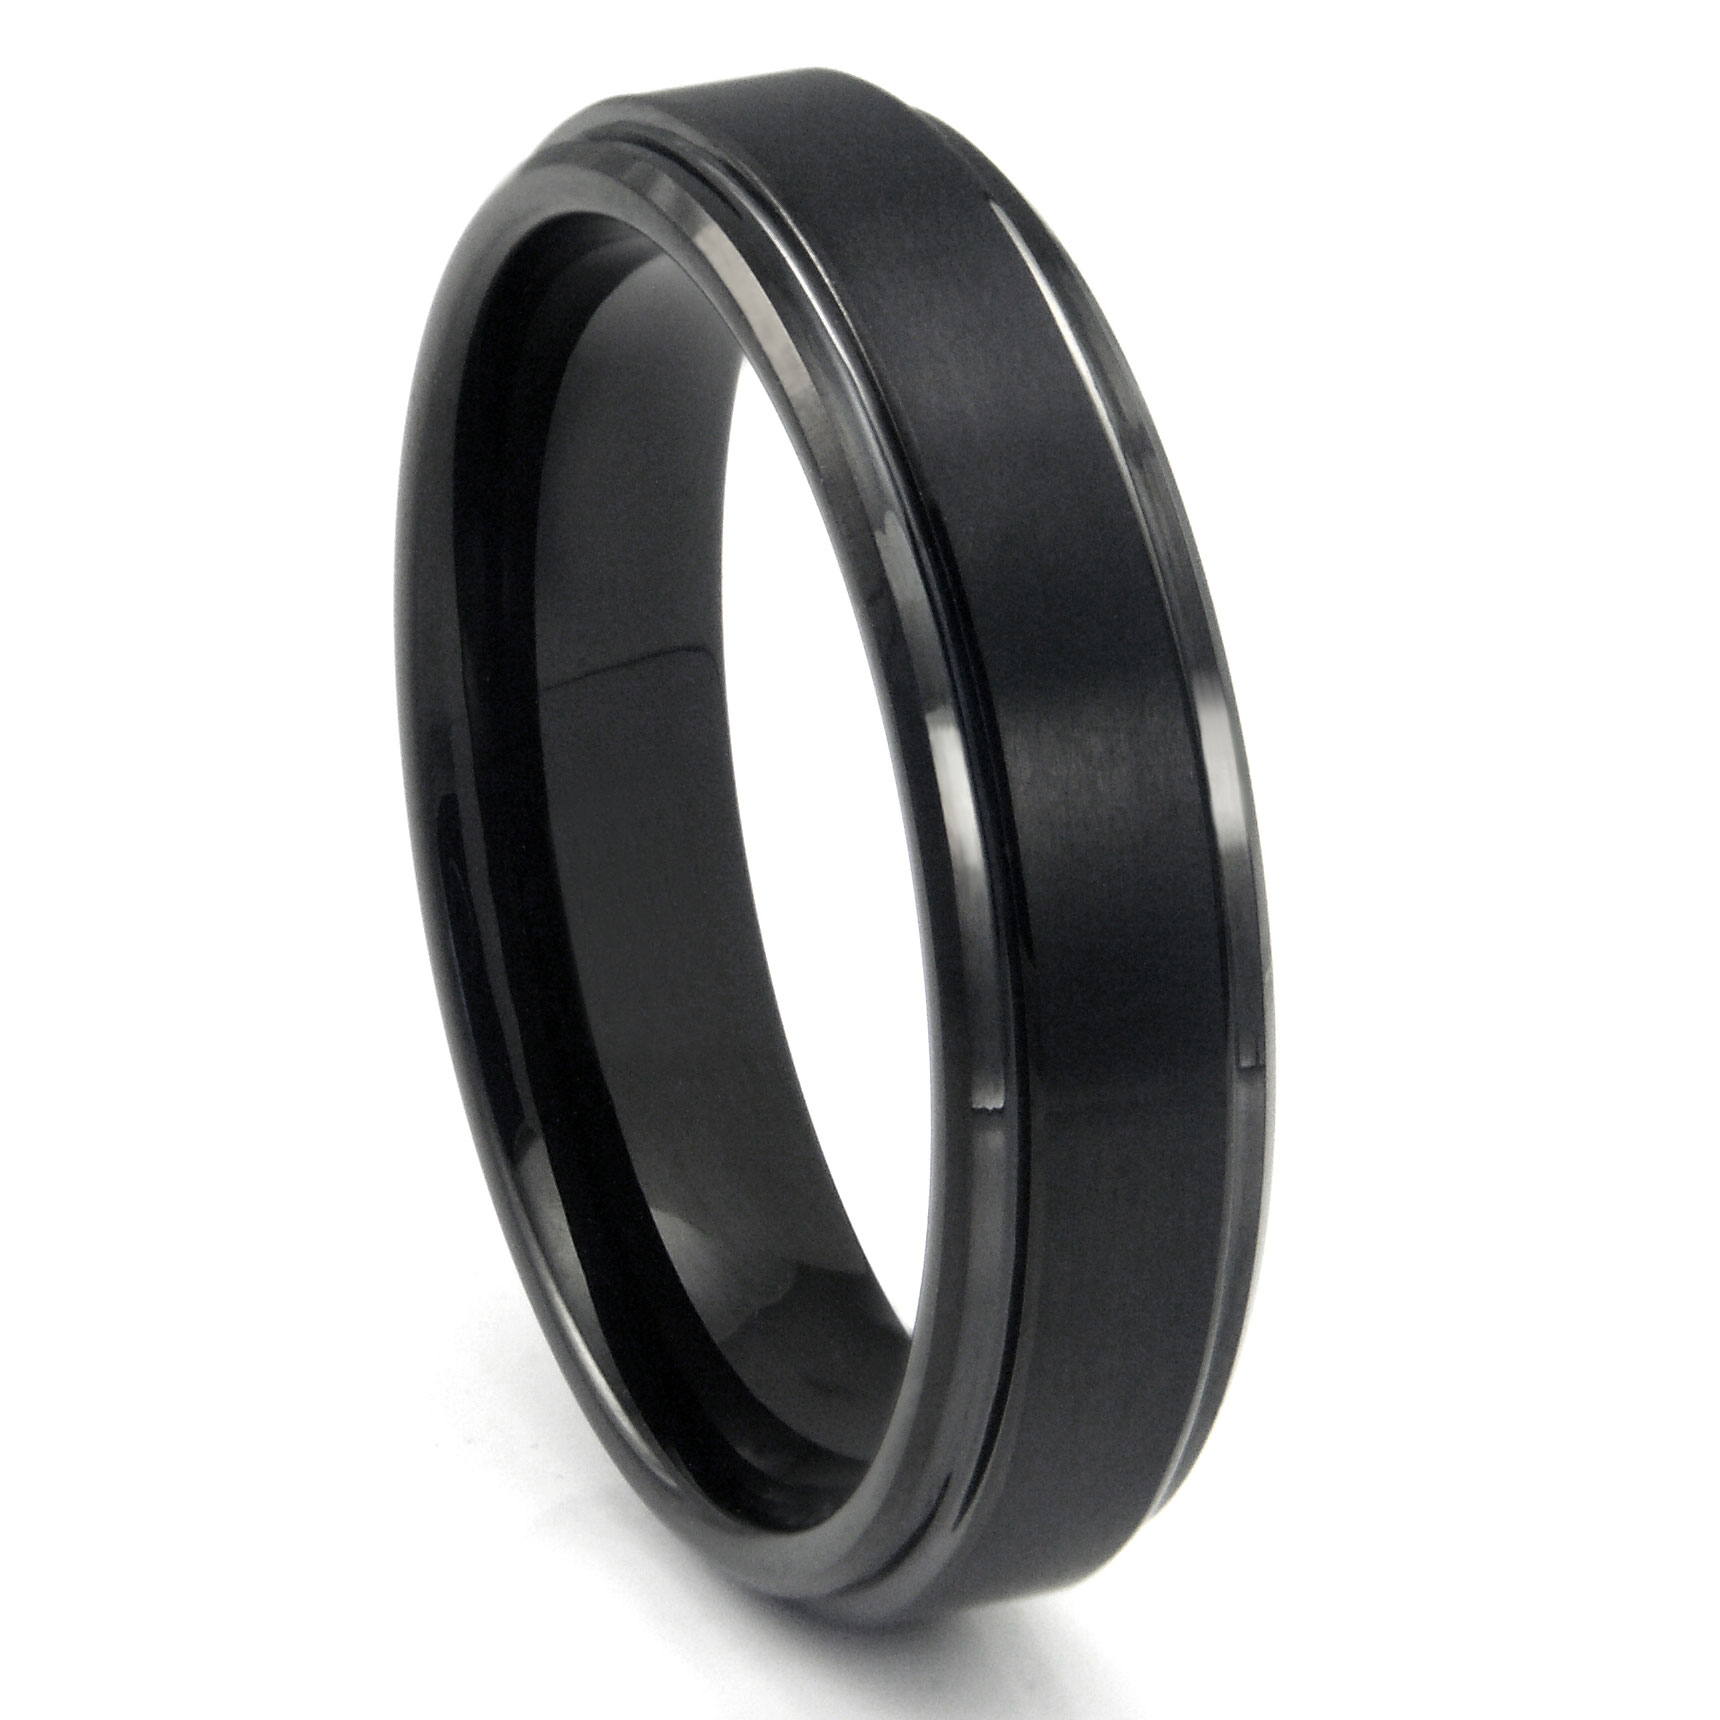 Black Tungsten Carbide Wedding Band Ring w Raised Center P tungsten carbide wedding band Home Men s Tungsten Carbide Rings Loading zoom